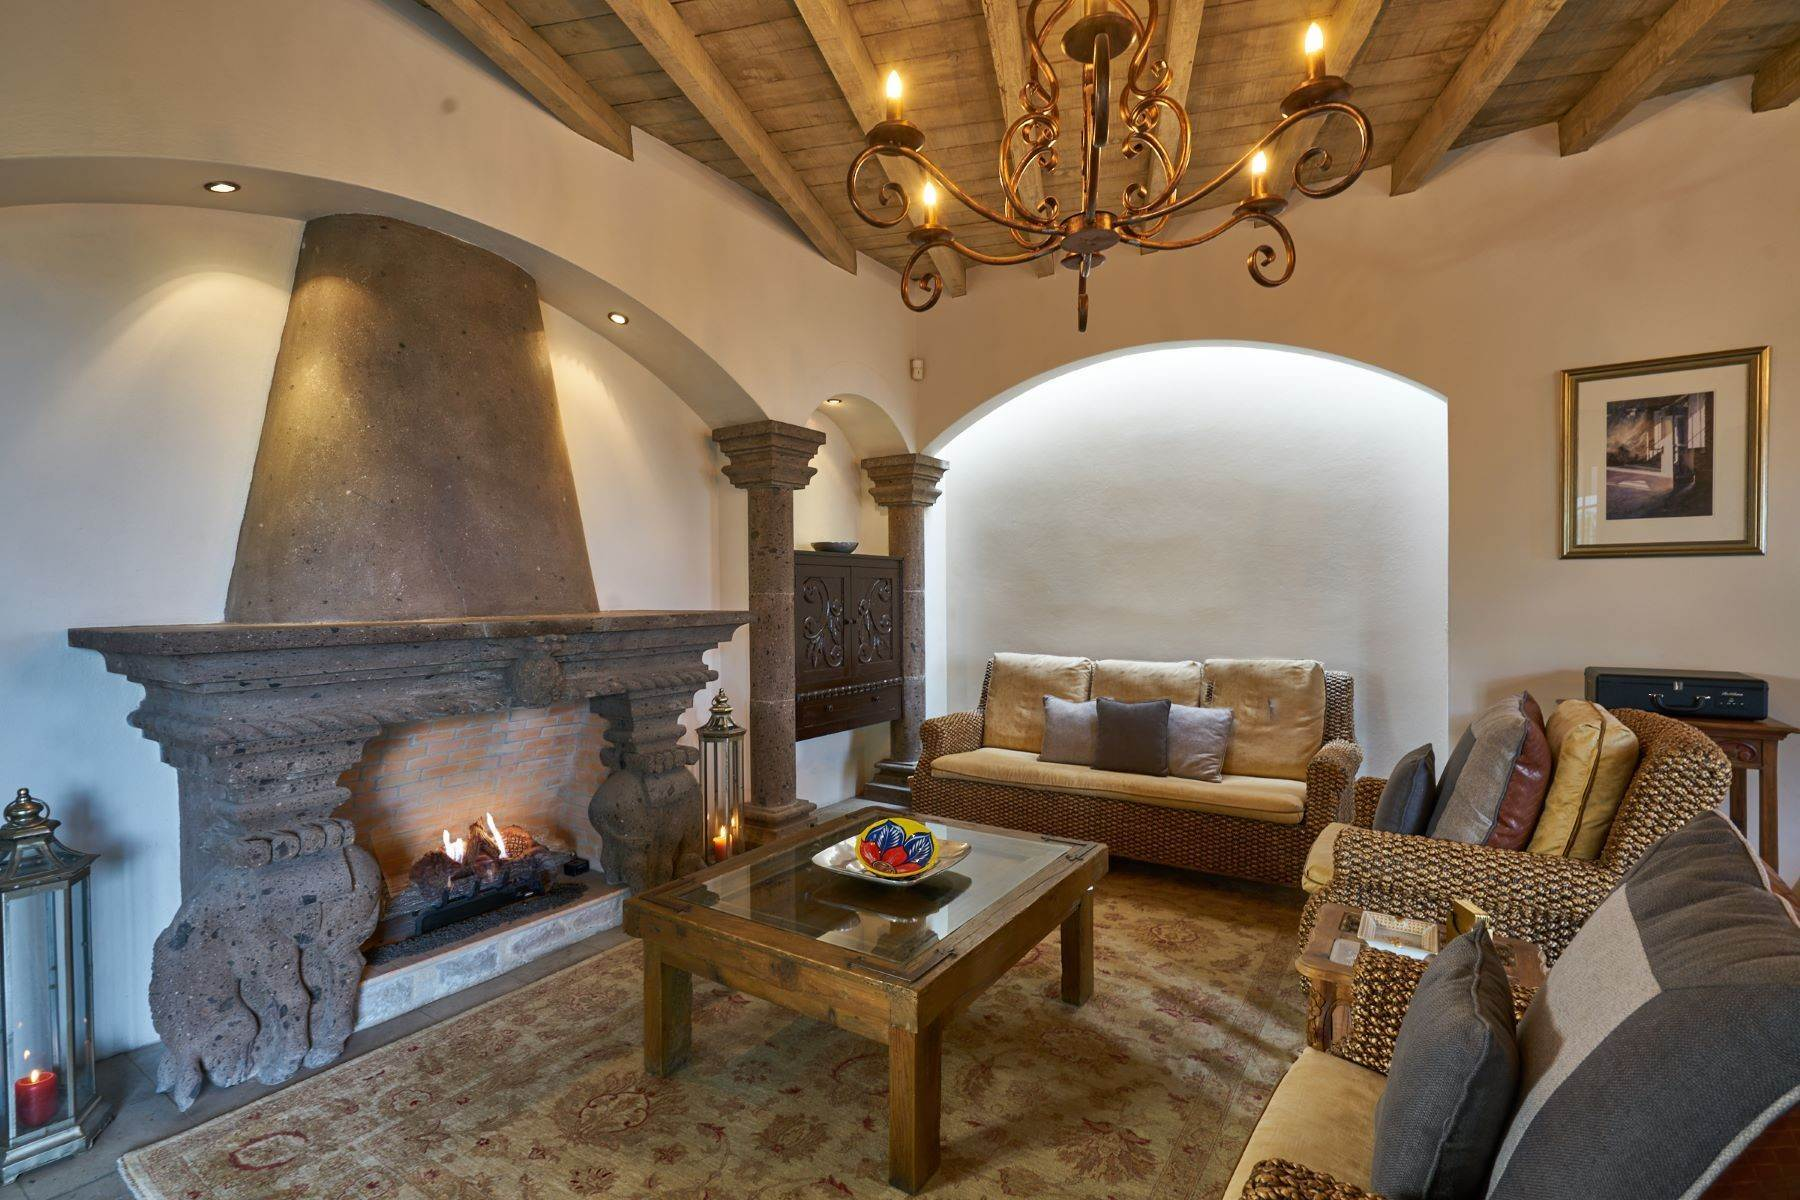 Single Family Homes for Sale at Casa Celeste Camino Real a Xichu #35 San Miguel De Allende, Guanajuato 37777 Mexico